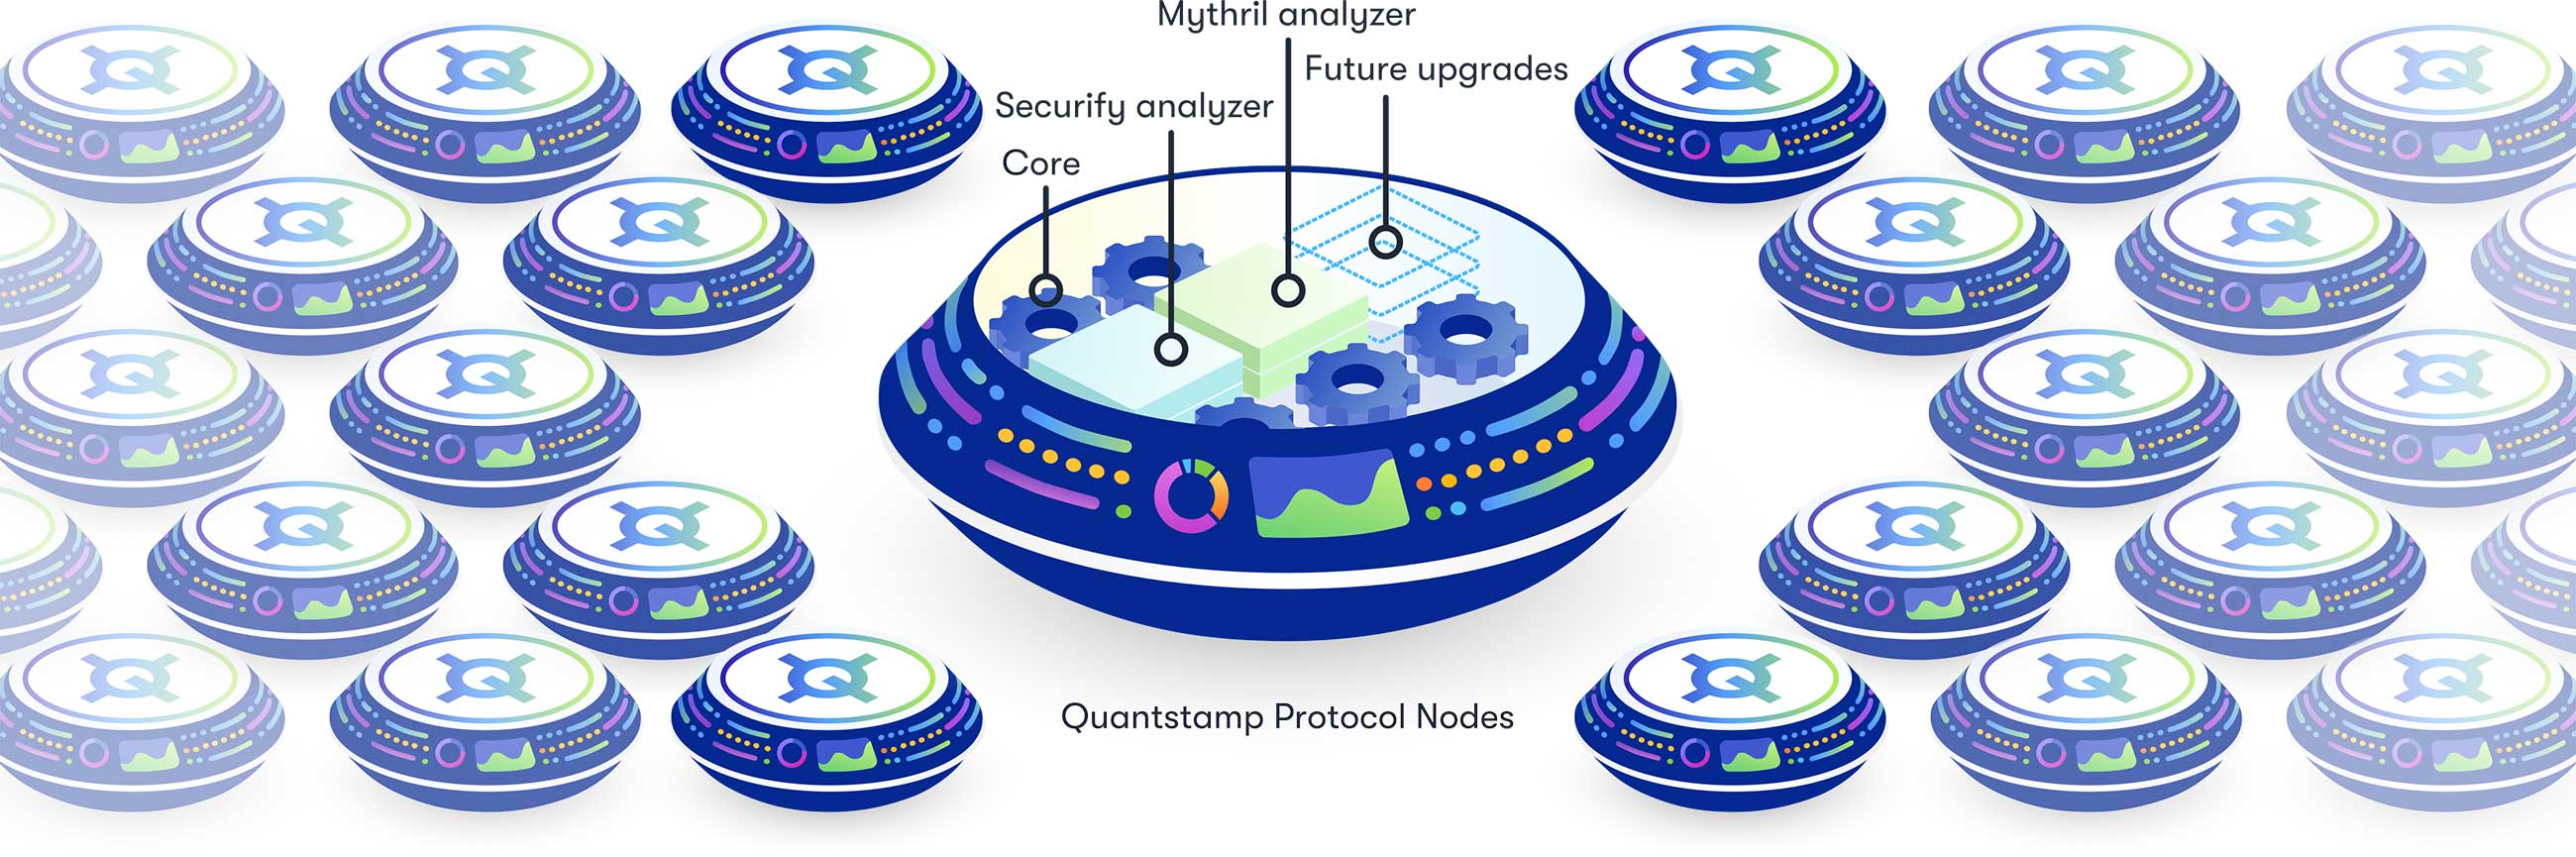 Visual metaphor of a Quantstamp Protocol Node, showing the Oyente and Mithril analyzers, core, and future upgrades.